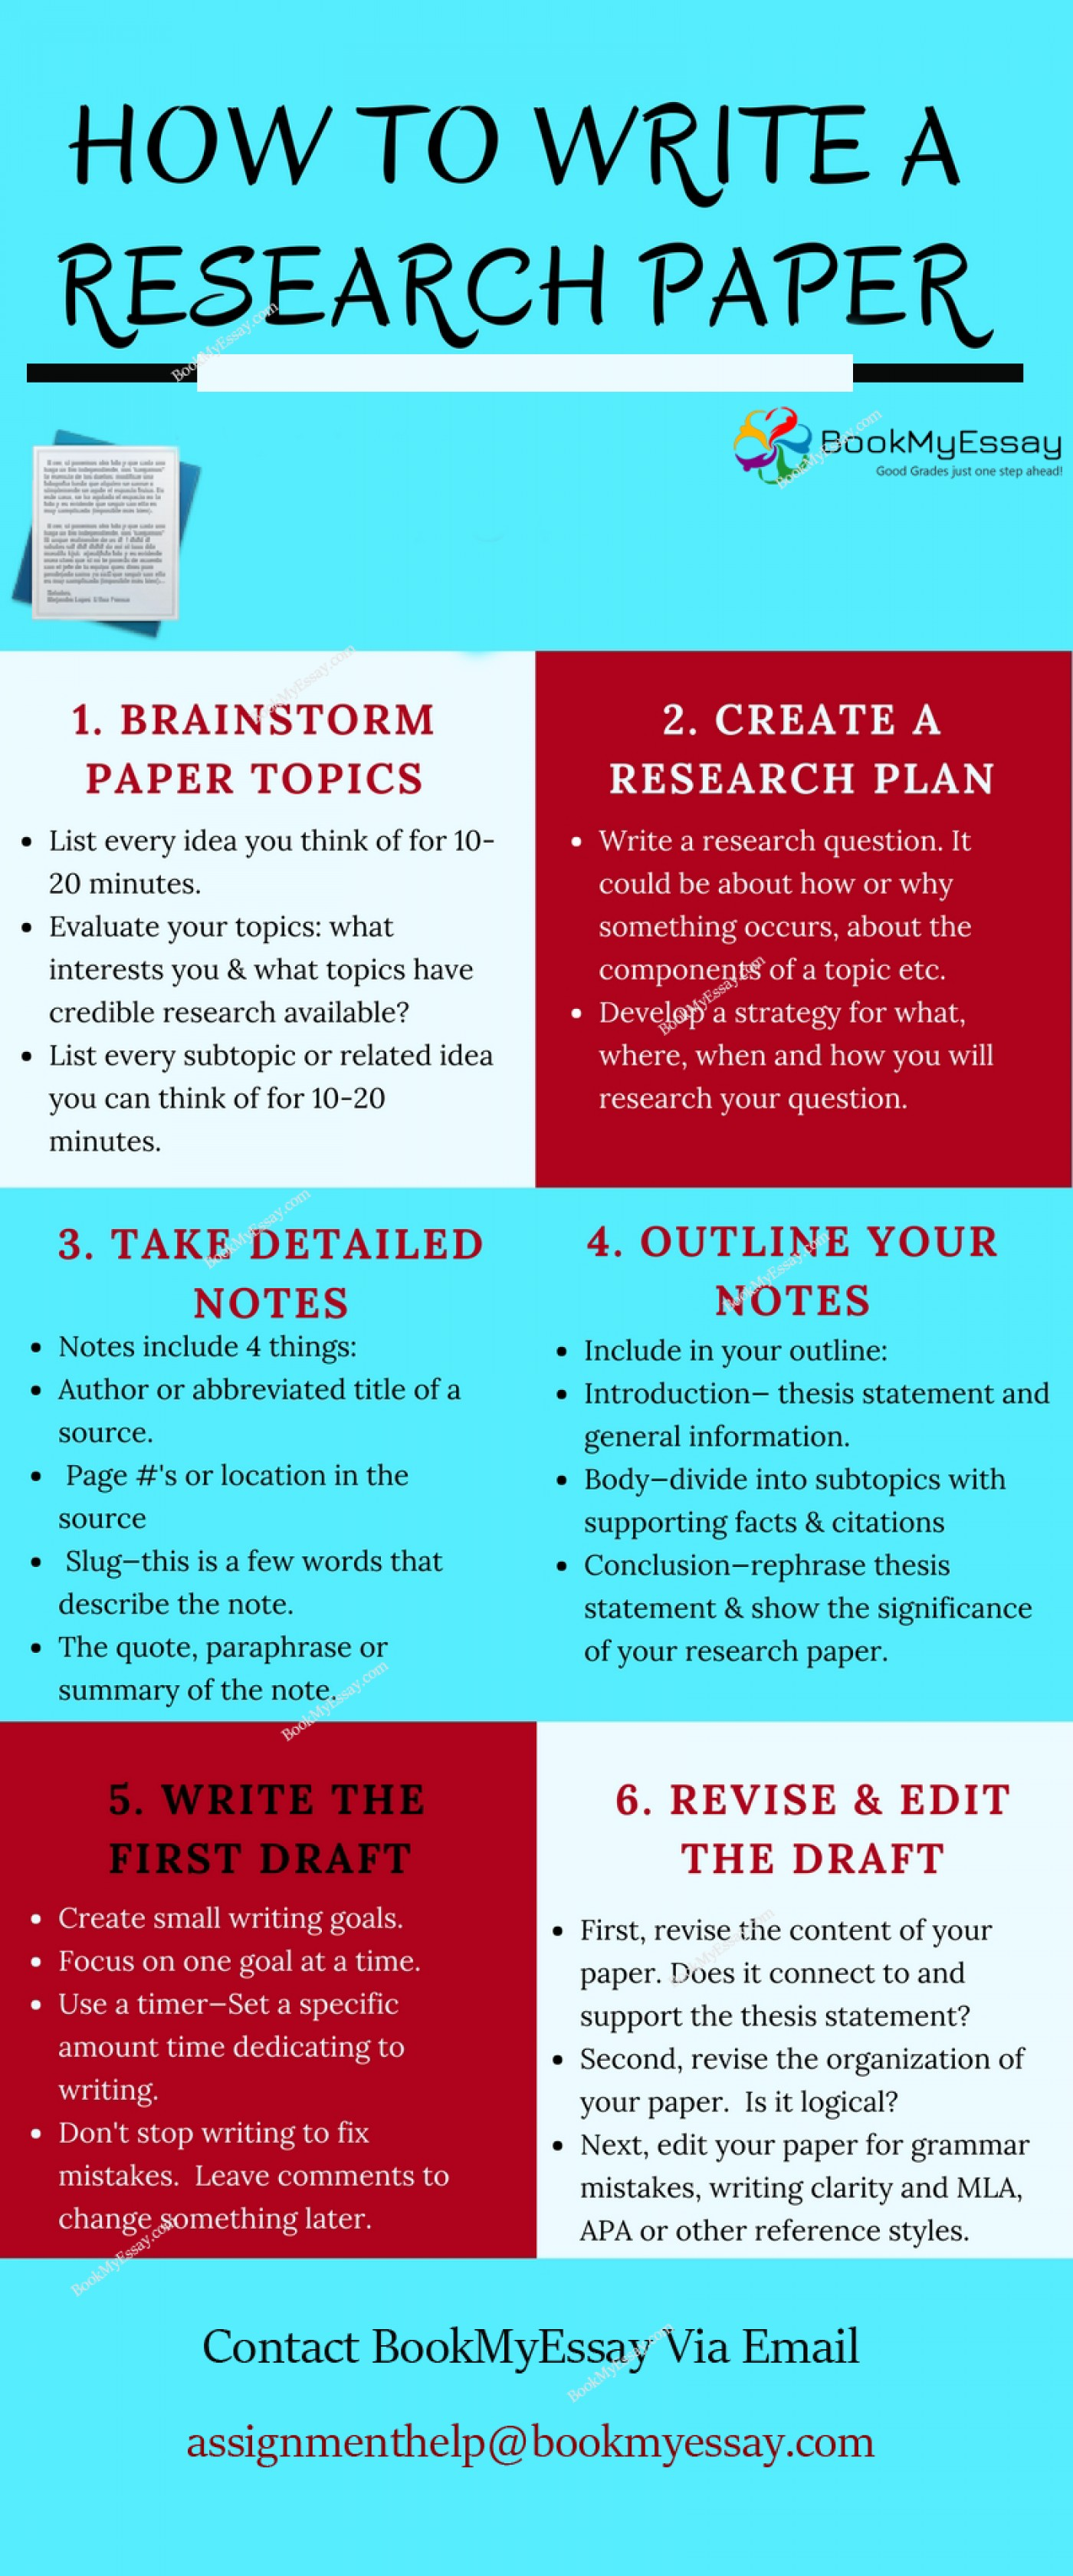 003 Research Paper Writing Service Dreaded Services In India Online Chennai 1400